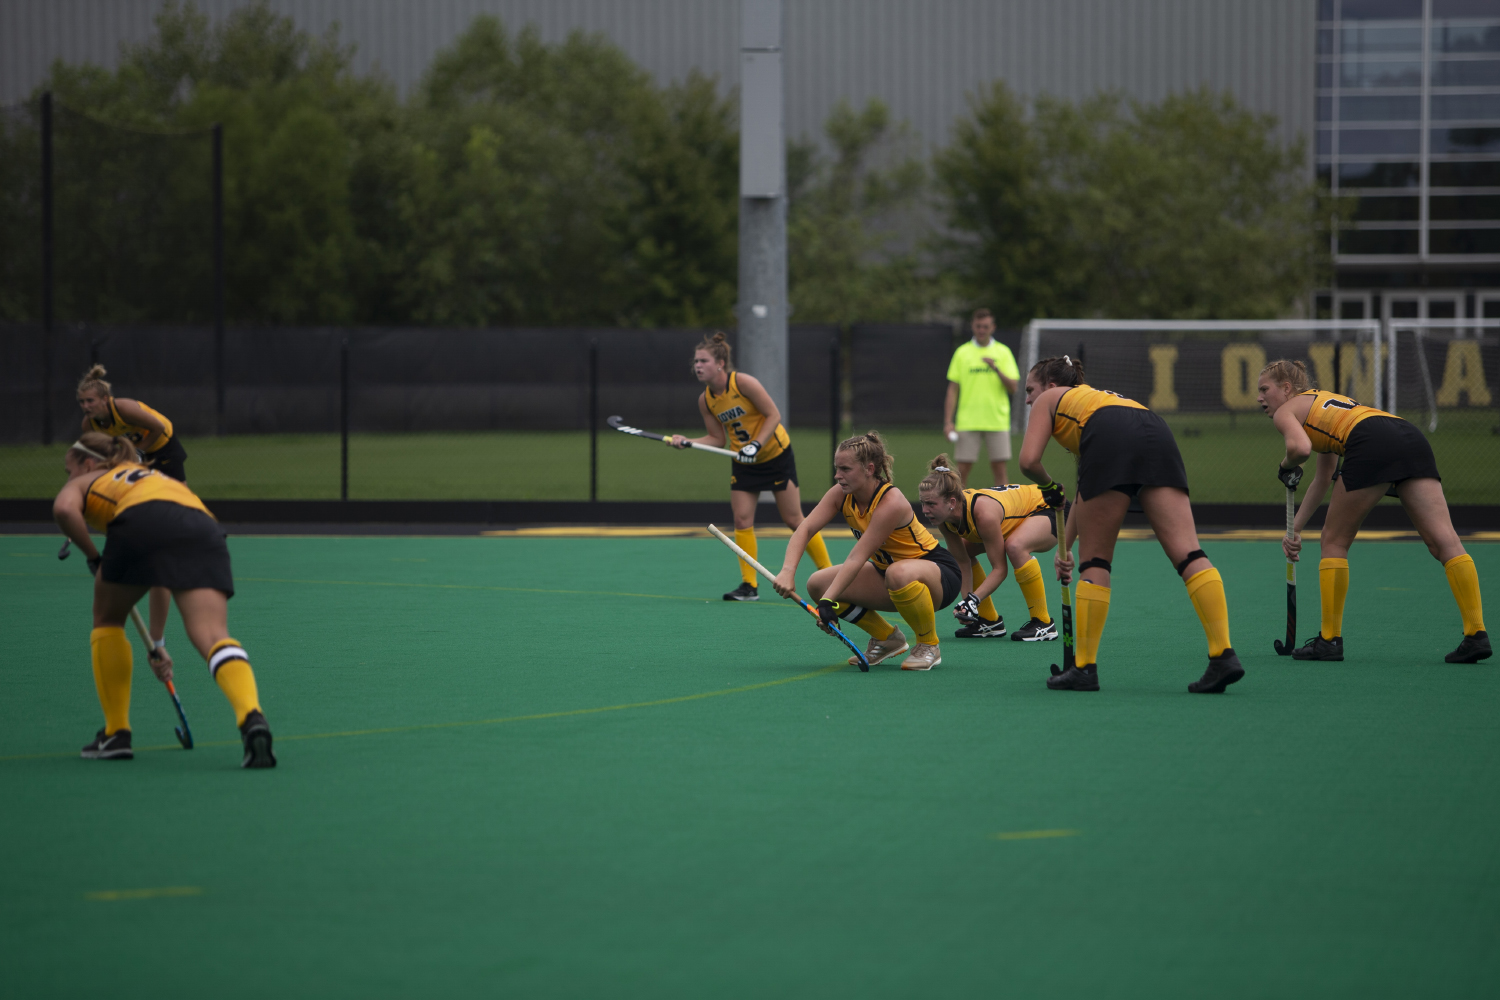 Iowa+players+prepare+for+a+corner+penalty+shot+during+a+field+hockey+game+between+Iowa+and+Columbia+at+Grant+Field+on+Sunday%2C+September+8%2C+2019.+The+Hawkeyes+defeated+the+Lions%2C+3-1.